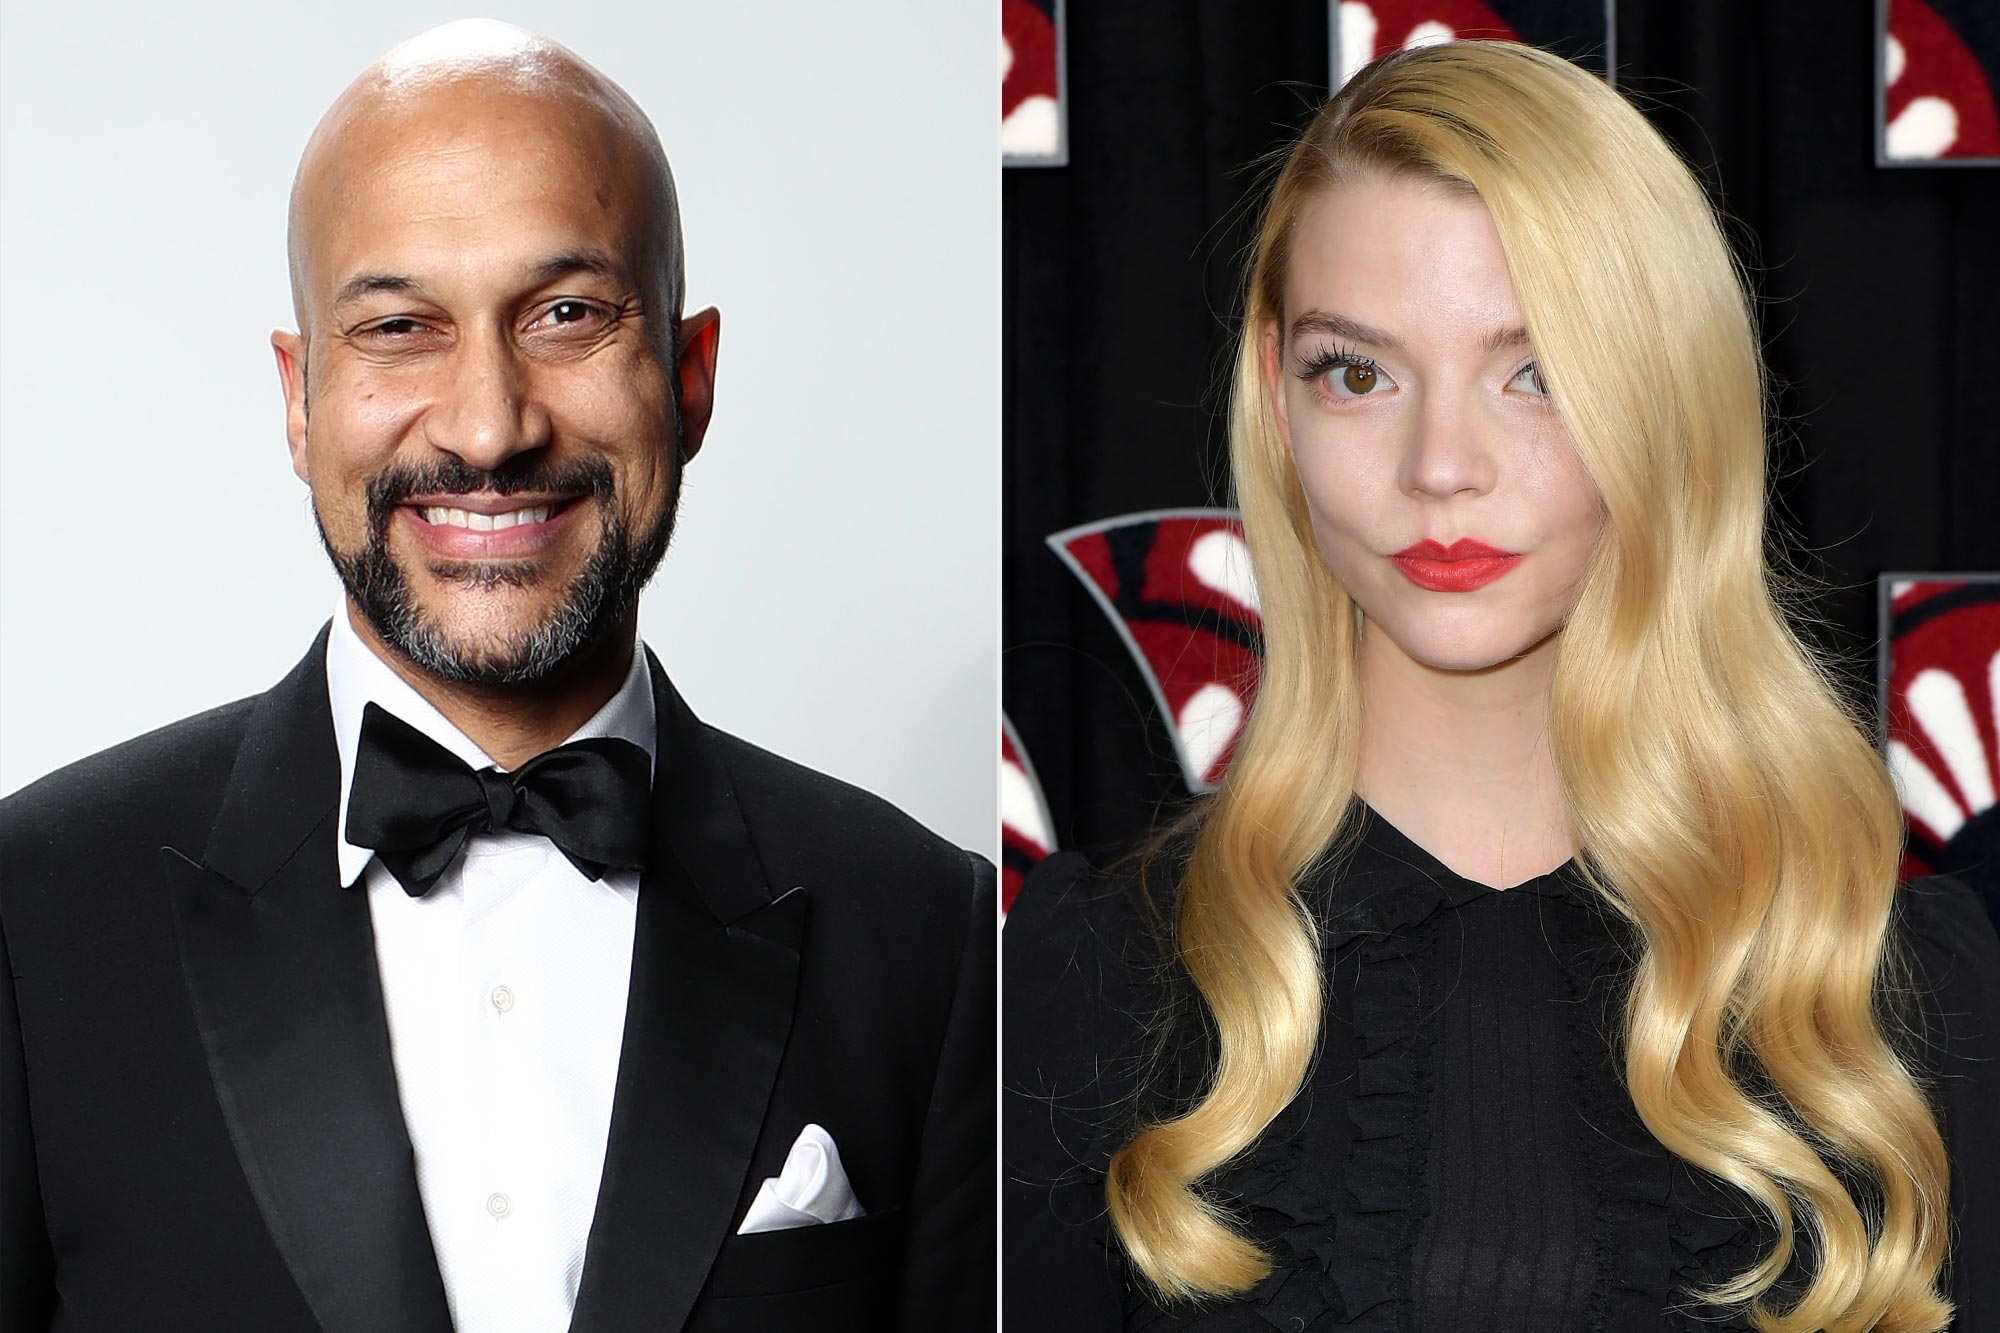 Keegan-Michael Key and Anya Taylor-Joy